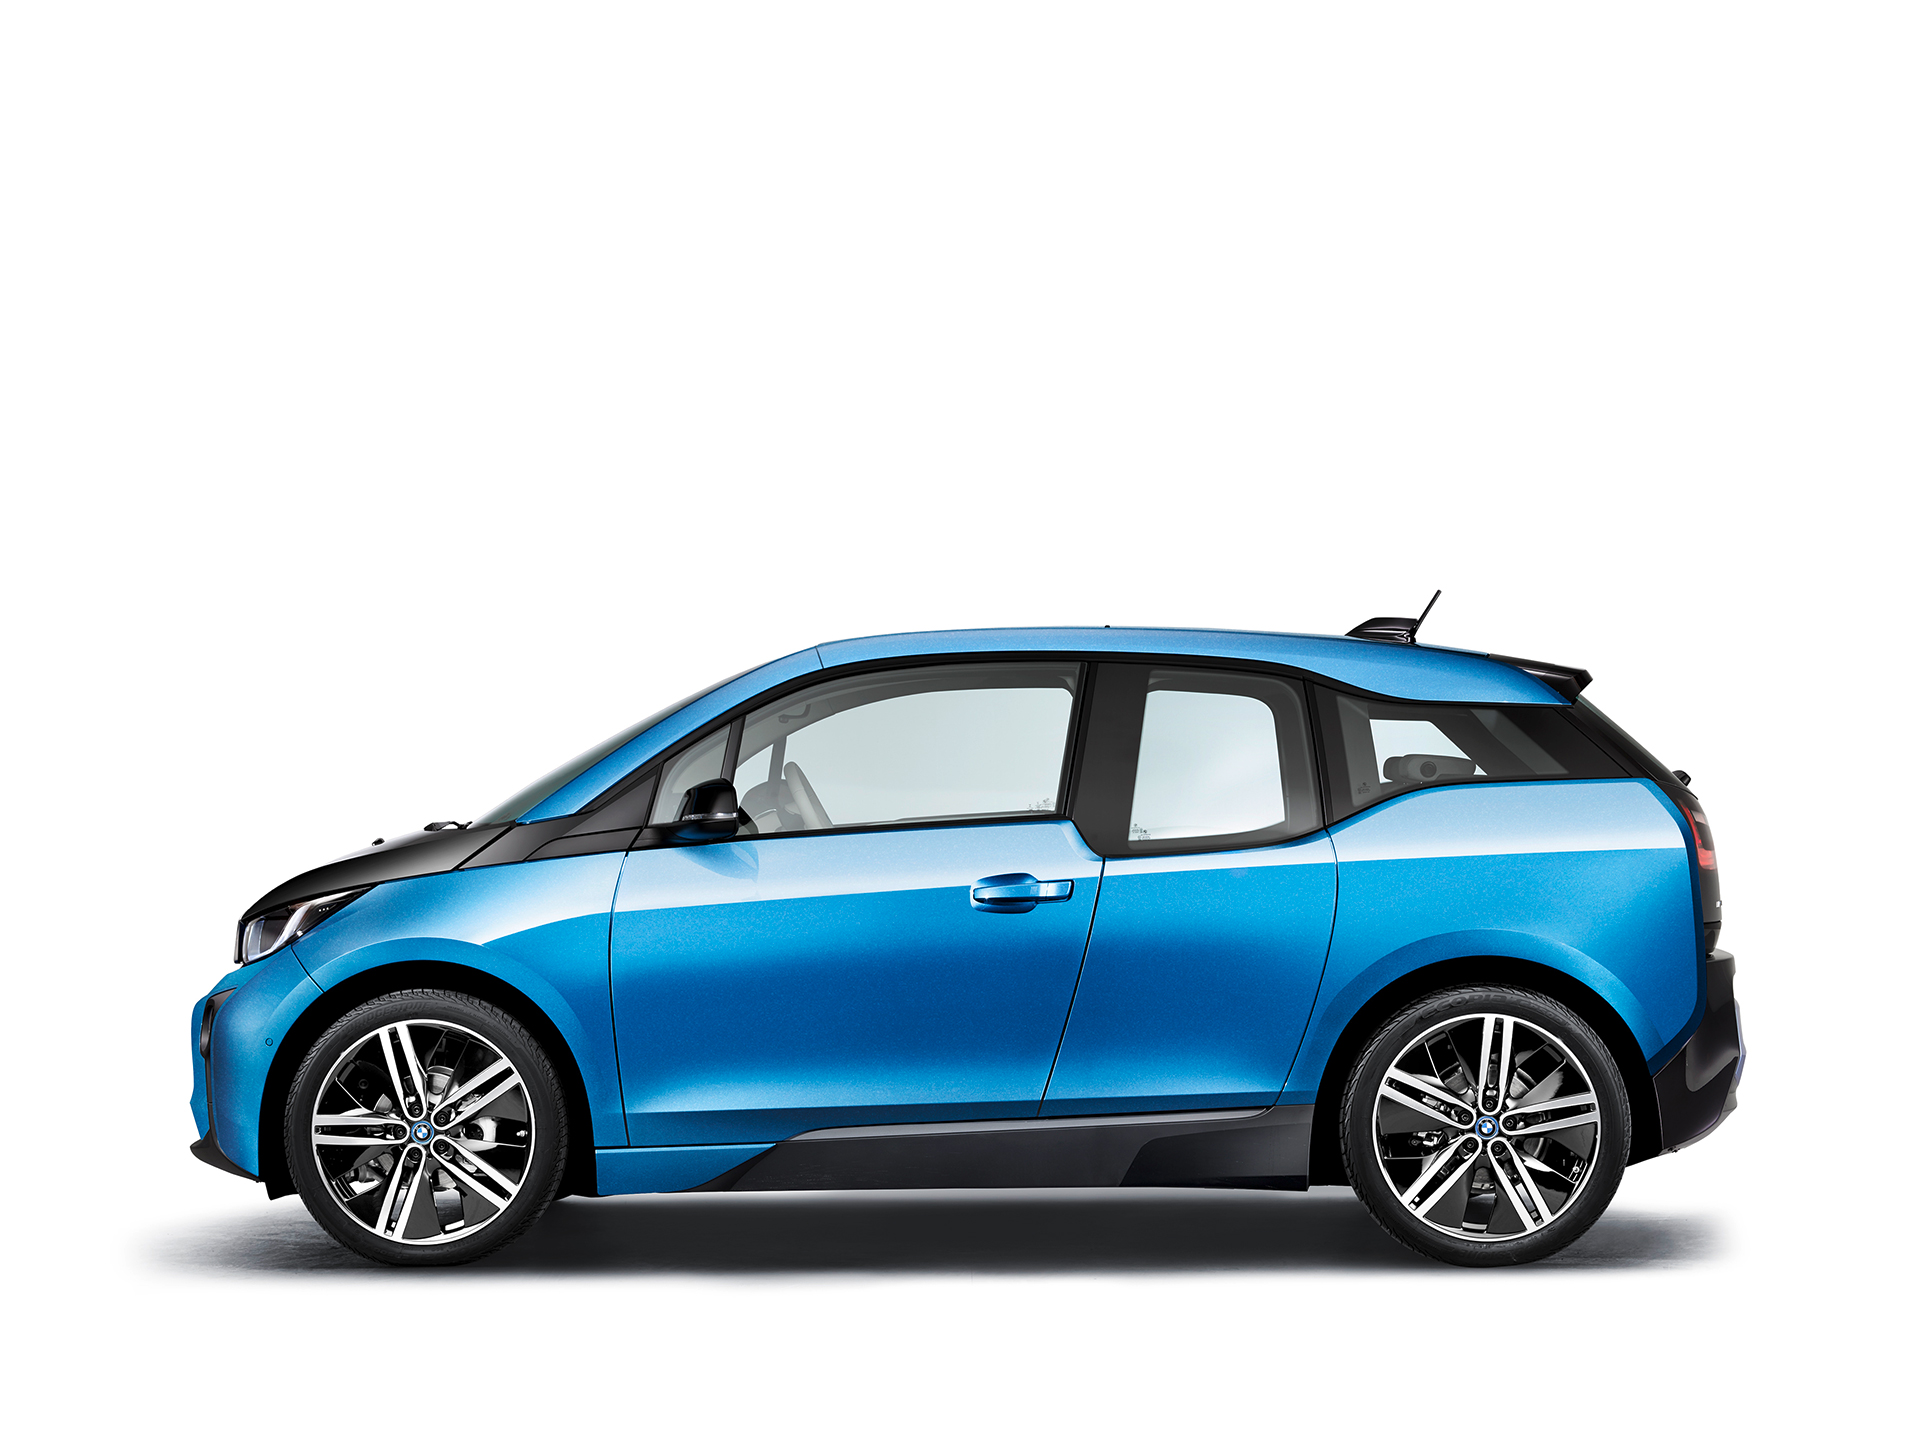 BMW i3 94ah - 2017 - side-face / profil